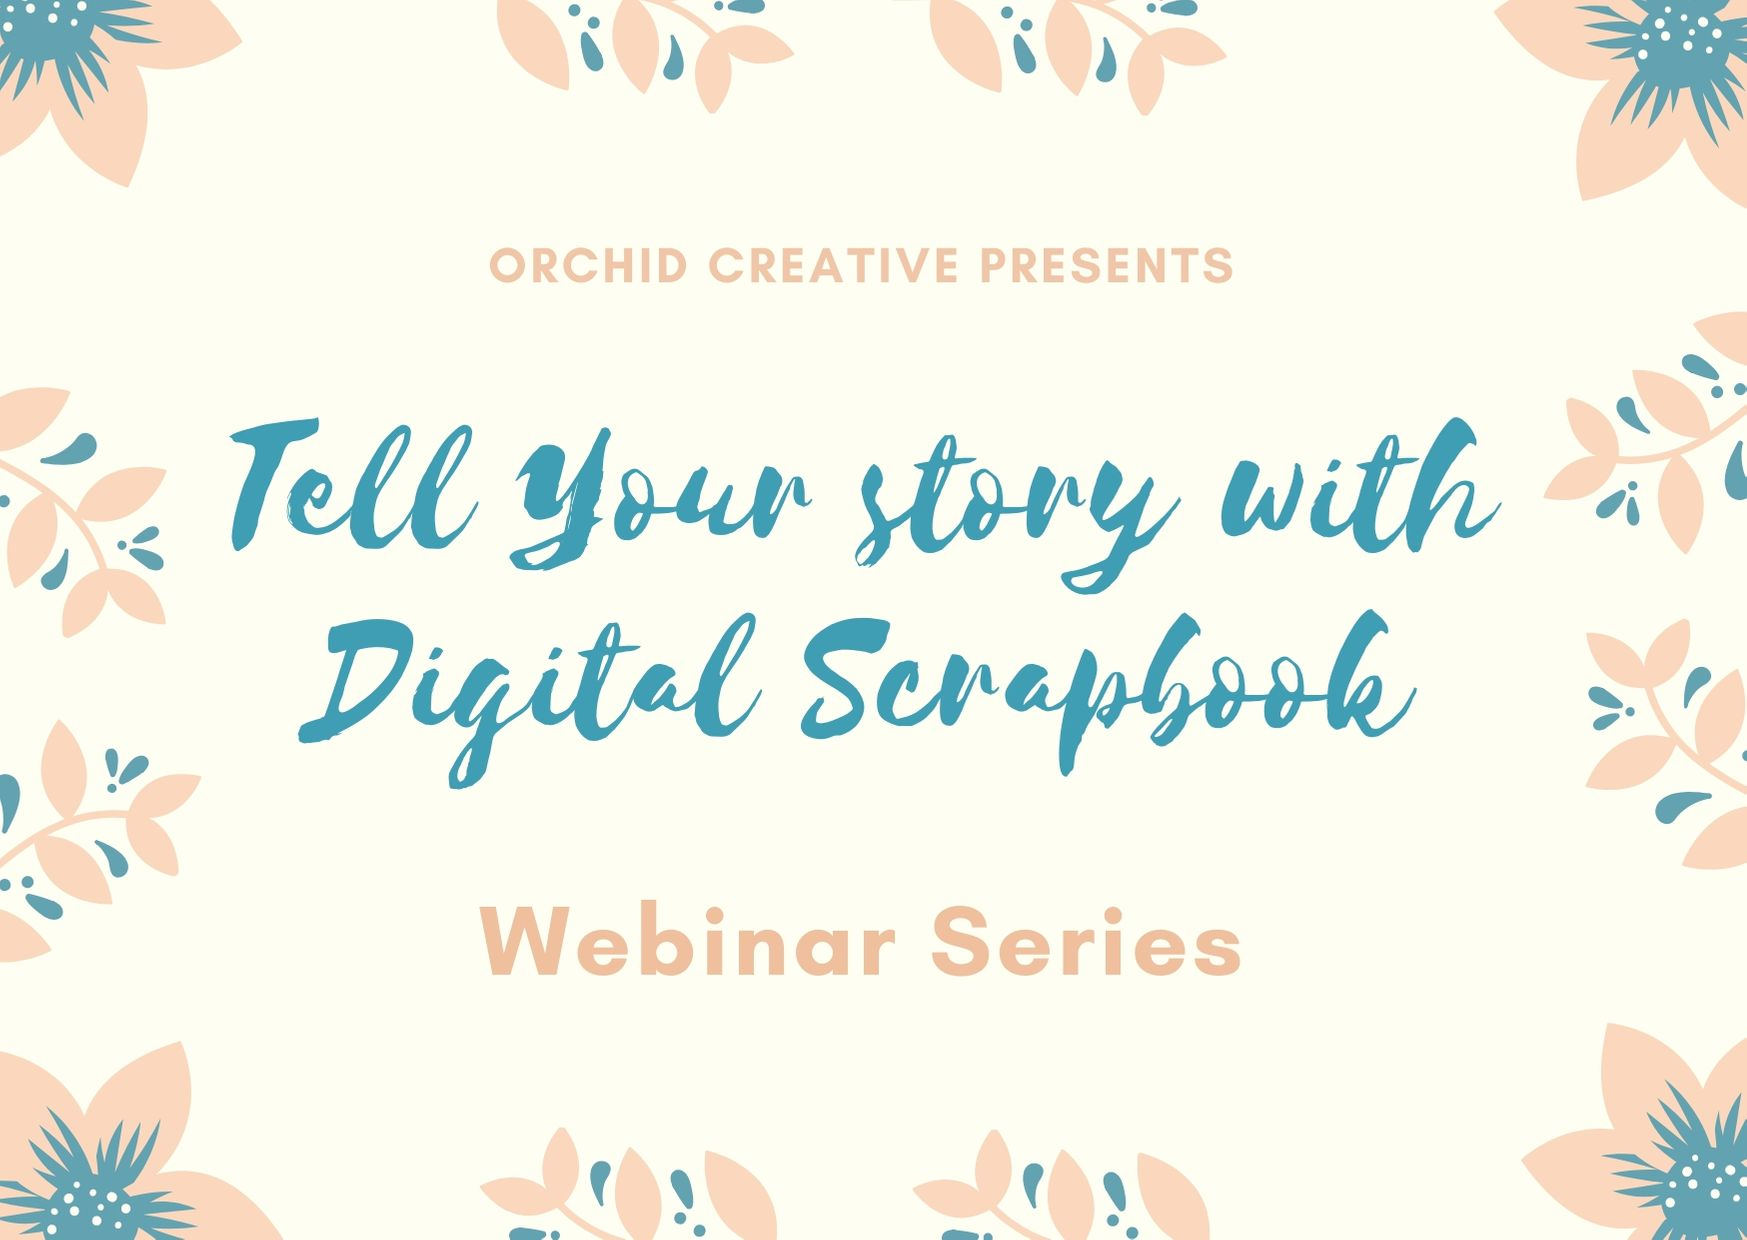 Tell Your story with Digital Scrapbook